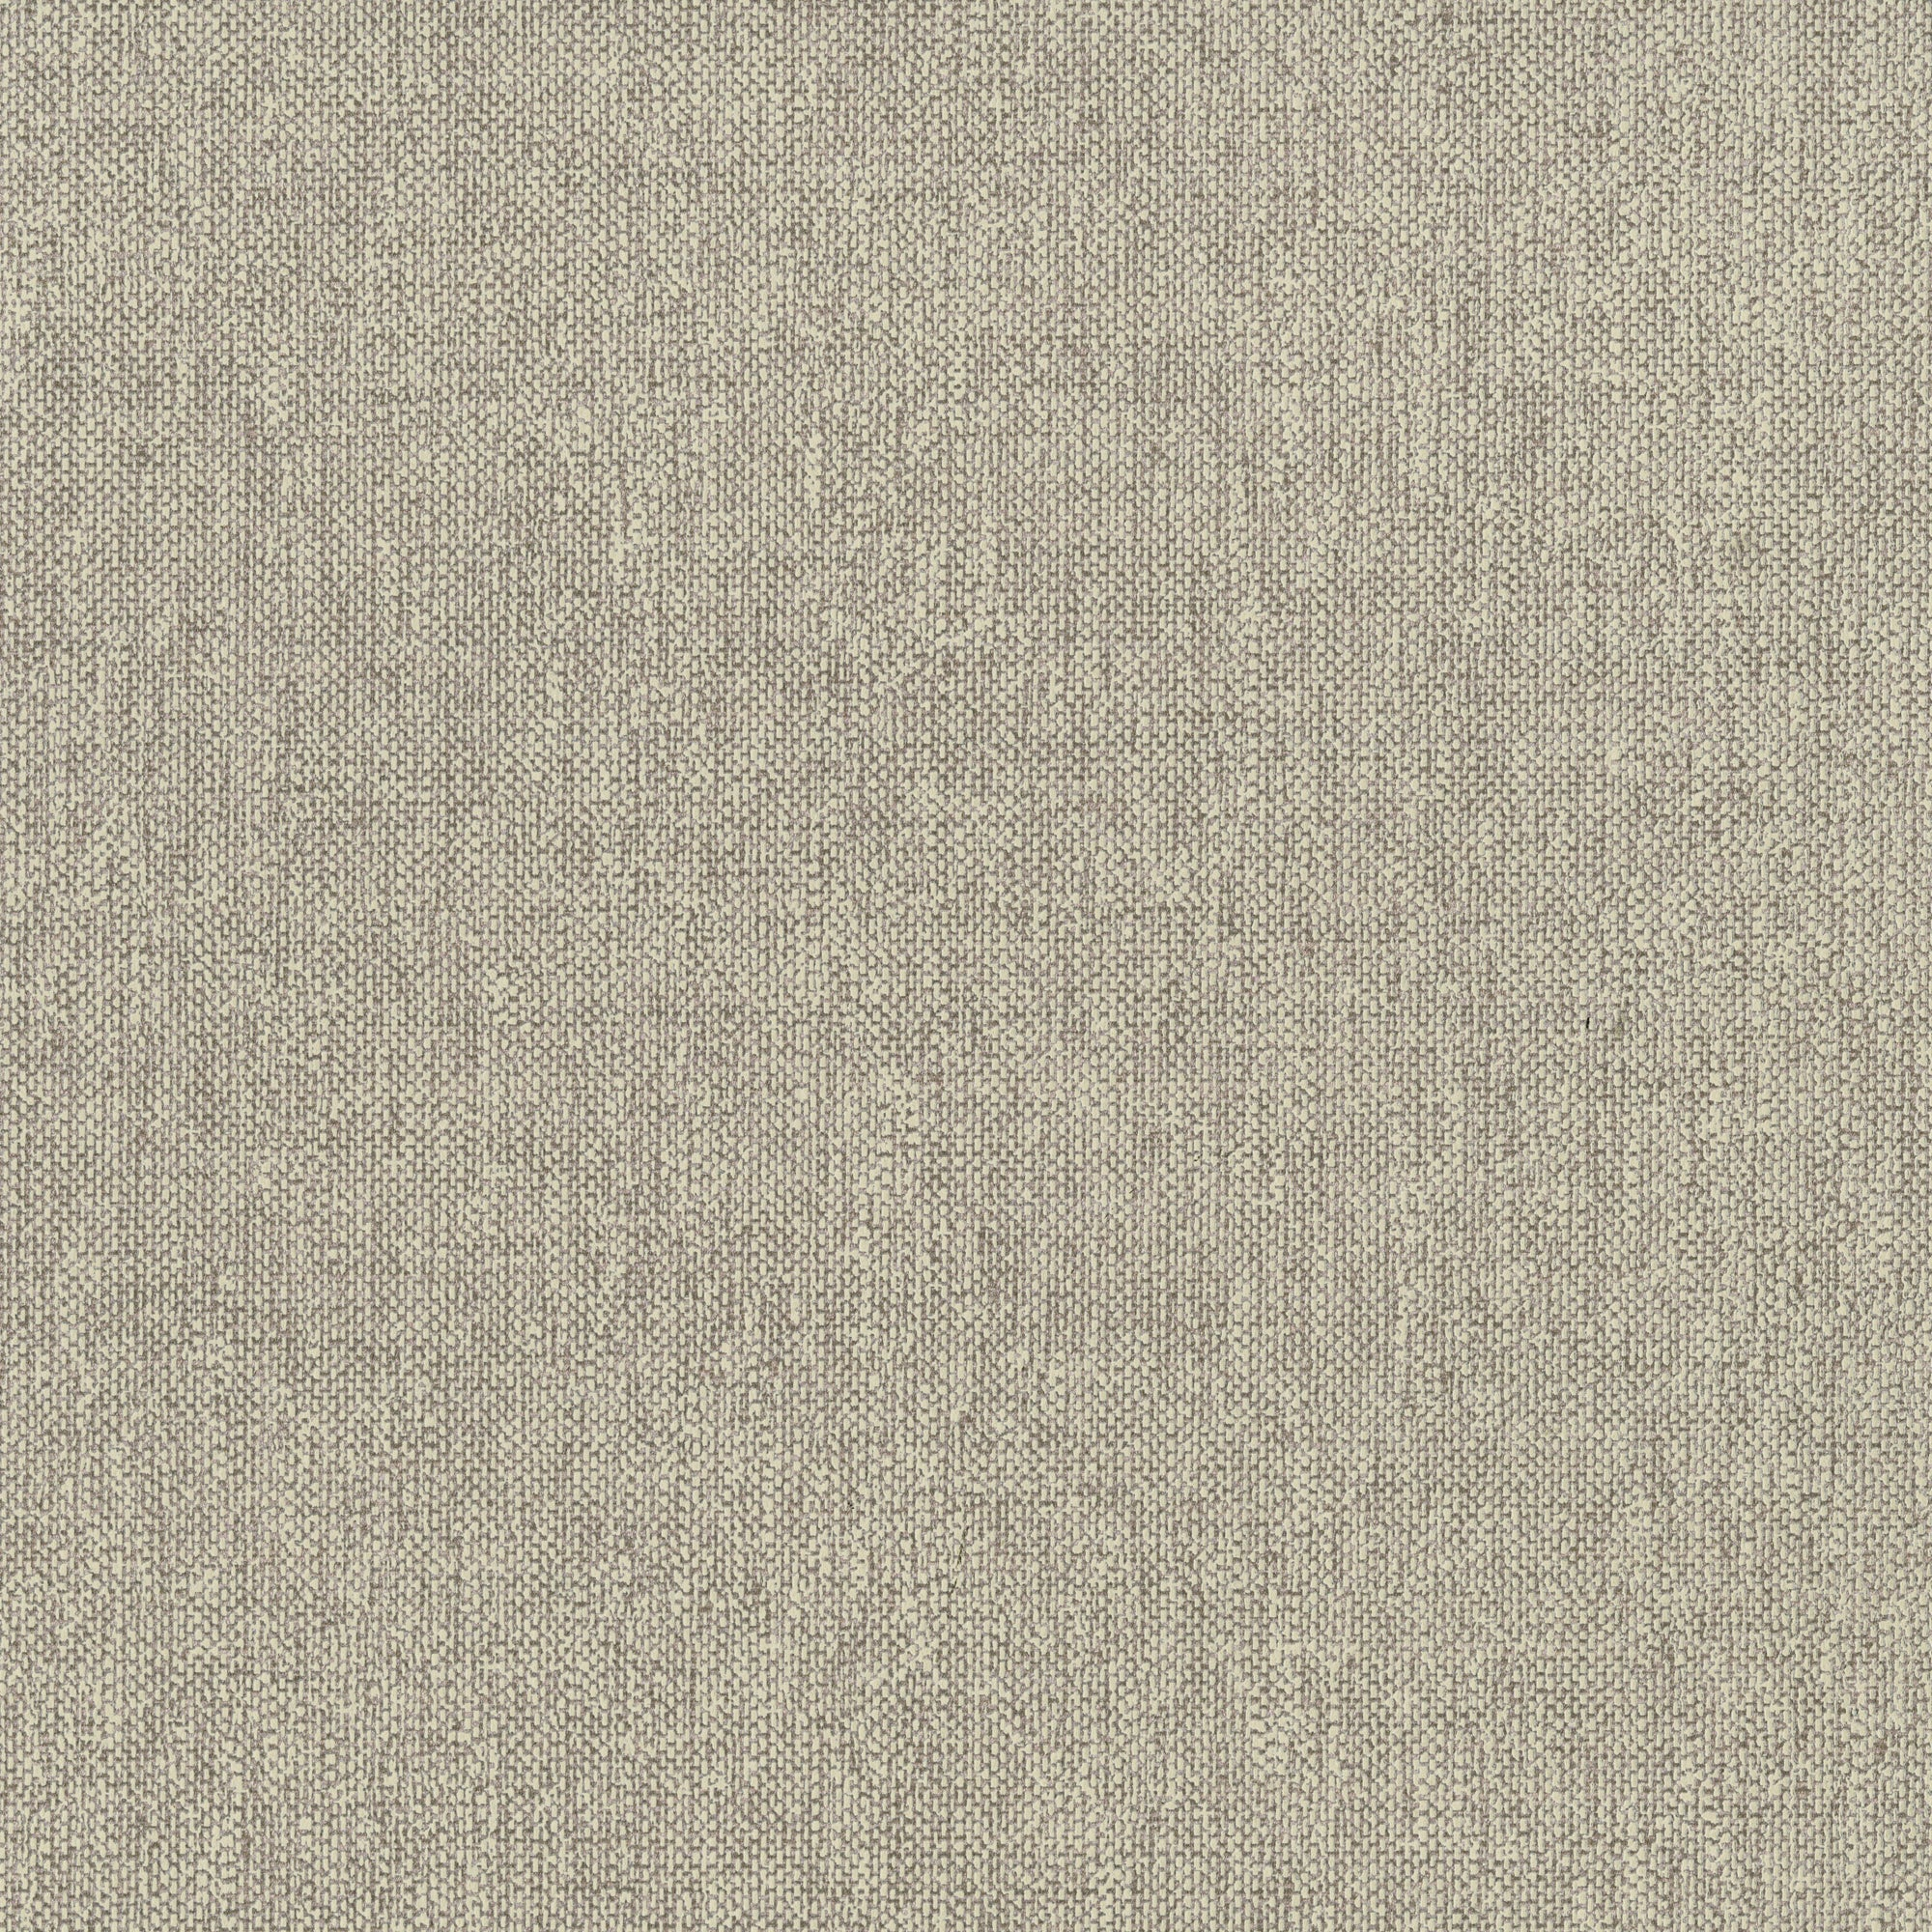 Faux Grasscloth In Silver, Brown And Beige, 8159 33